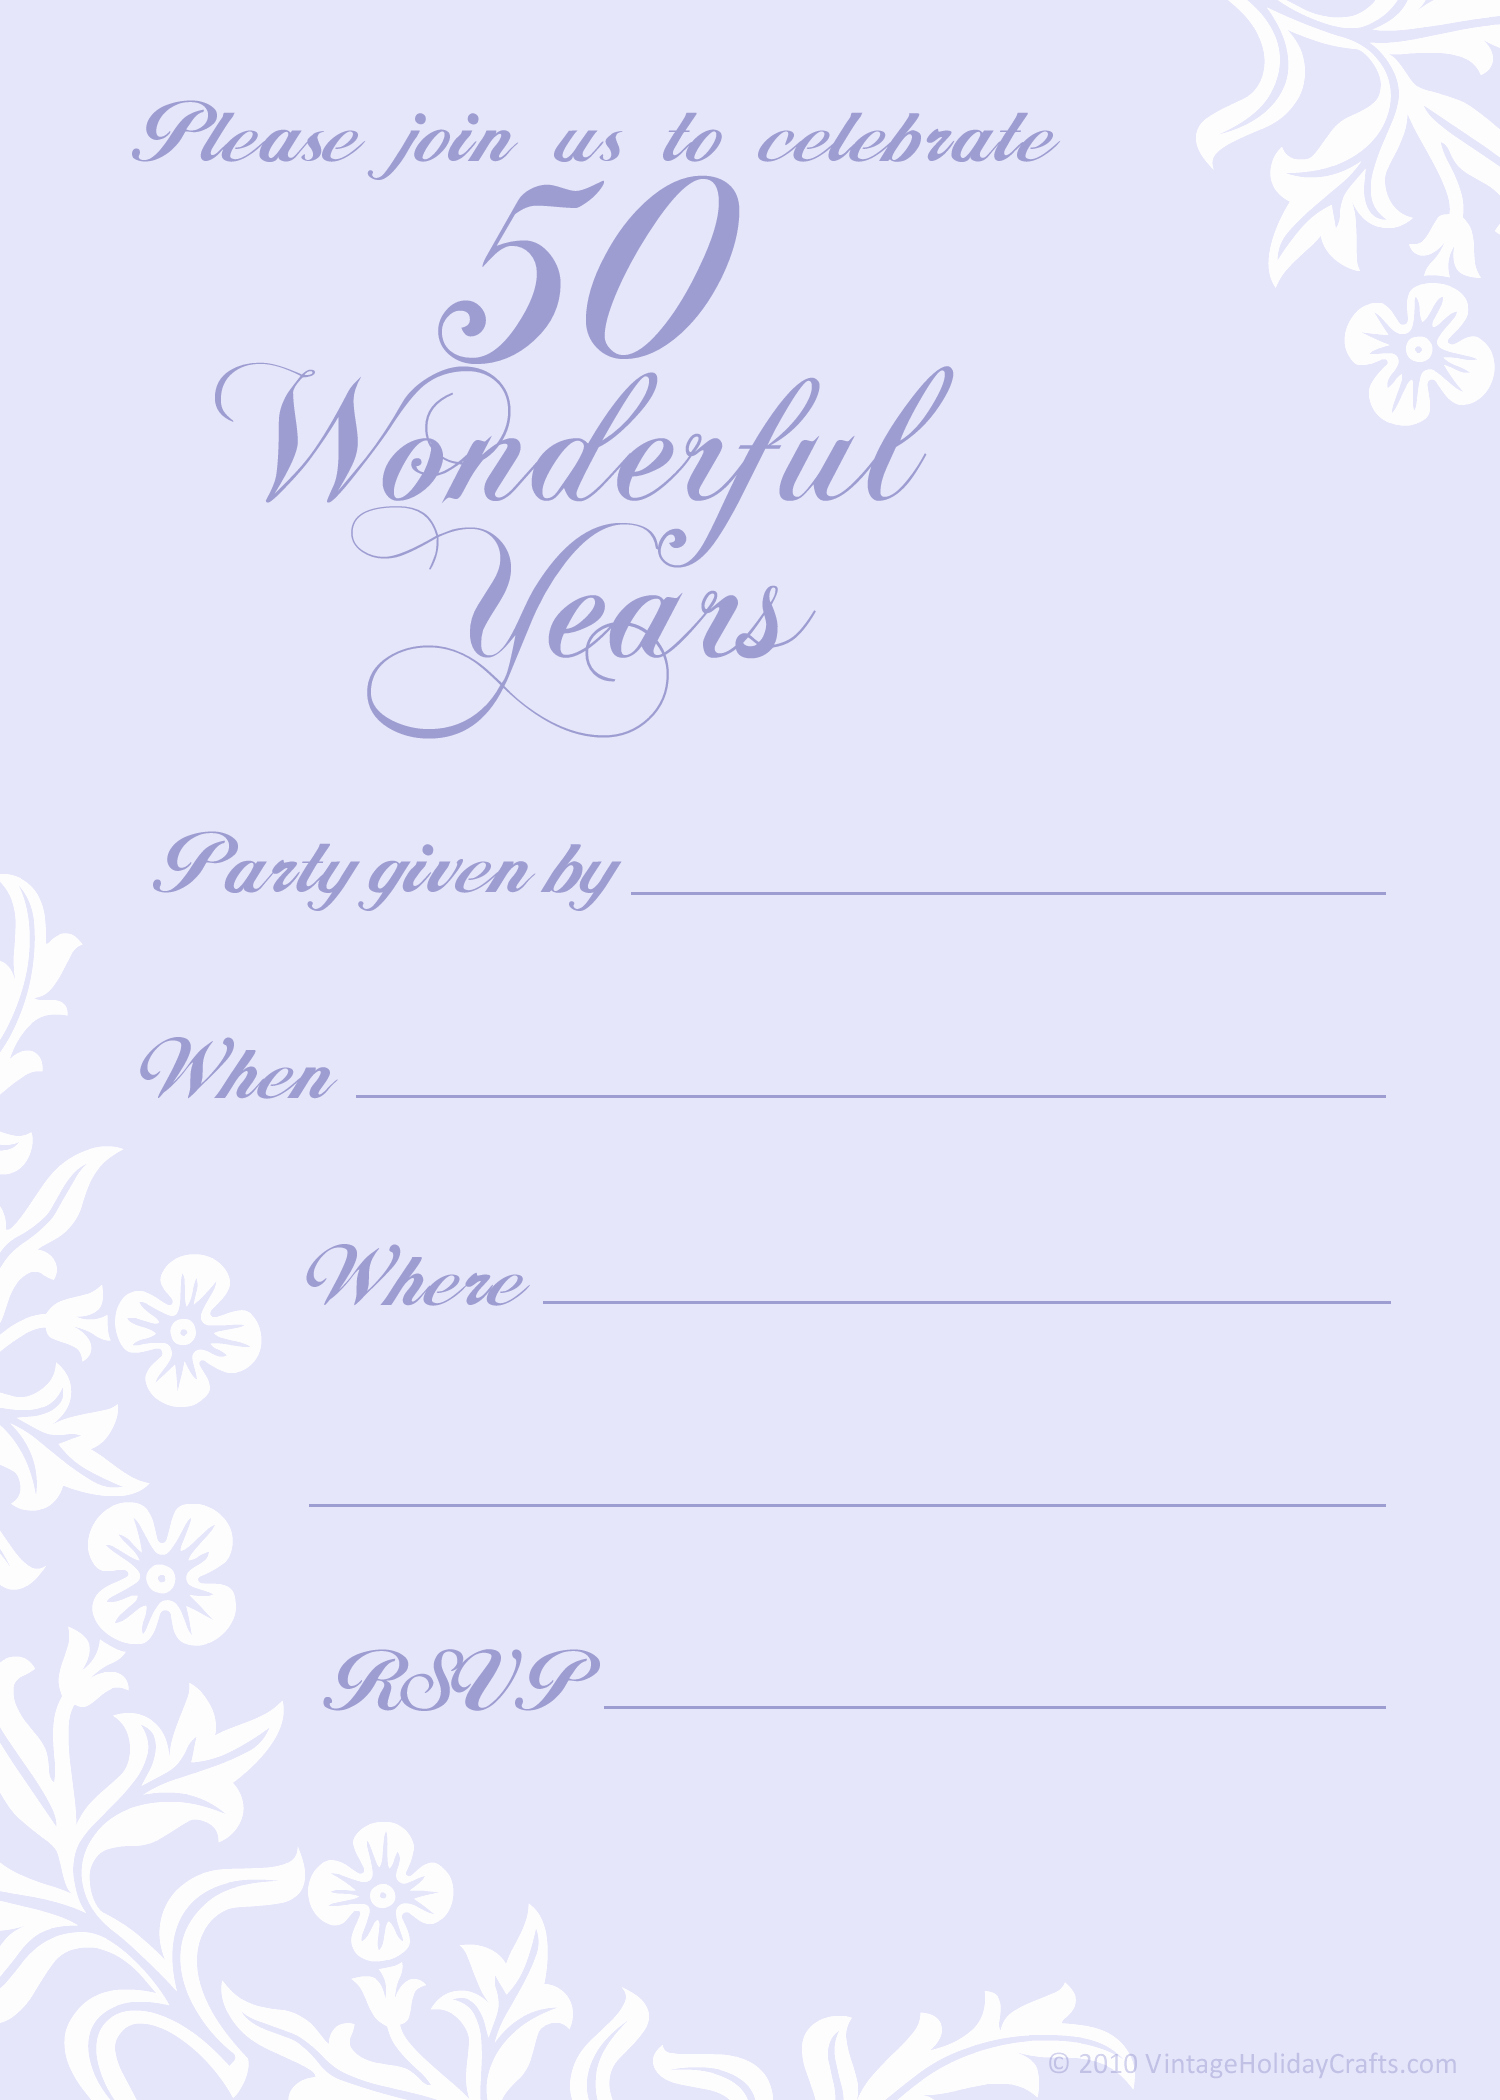 Wedding Anniversary Invitation Templates New Free 50th Wedding Anniversary Invitations Templates